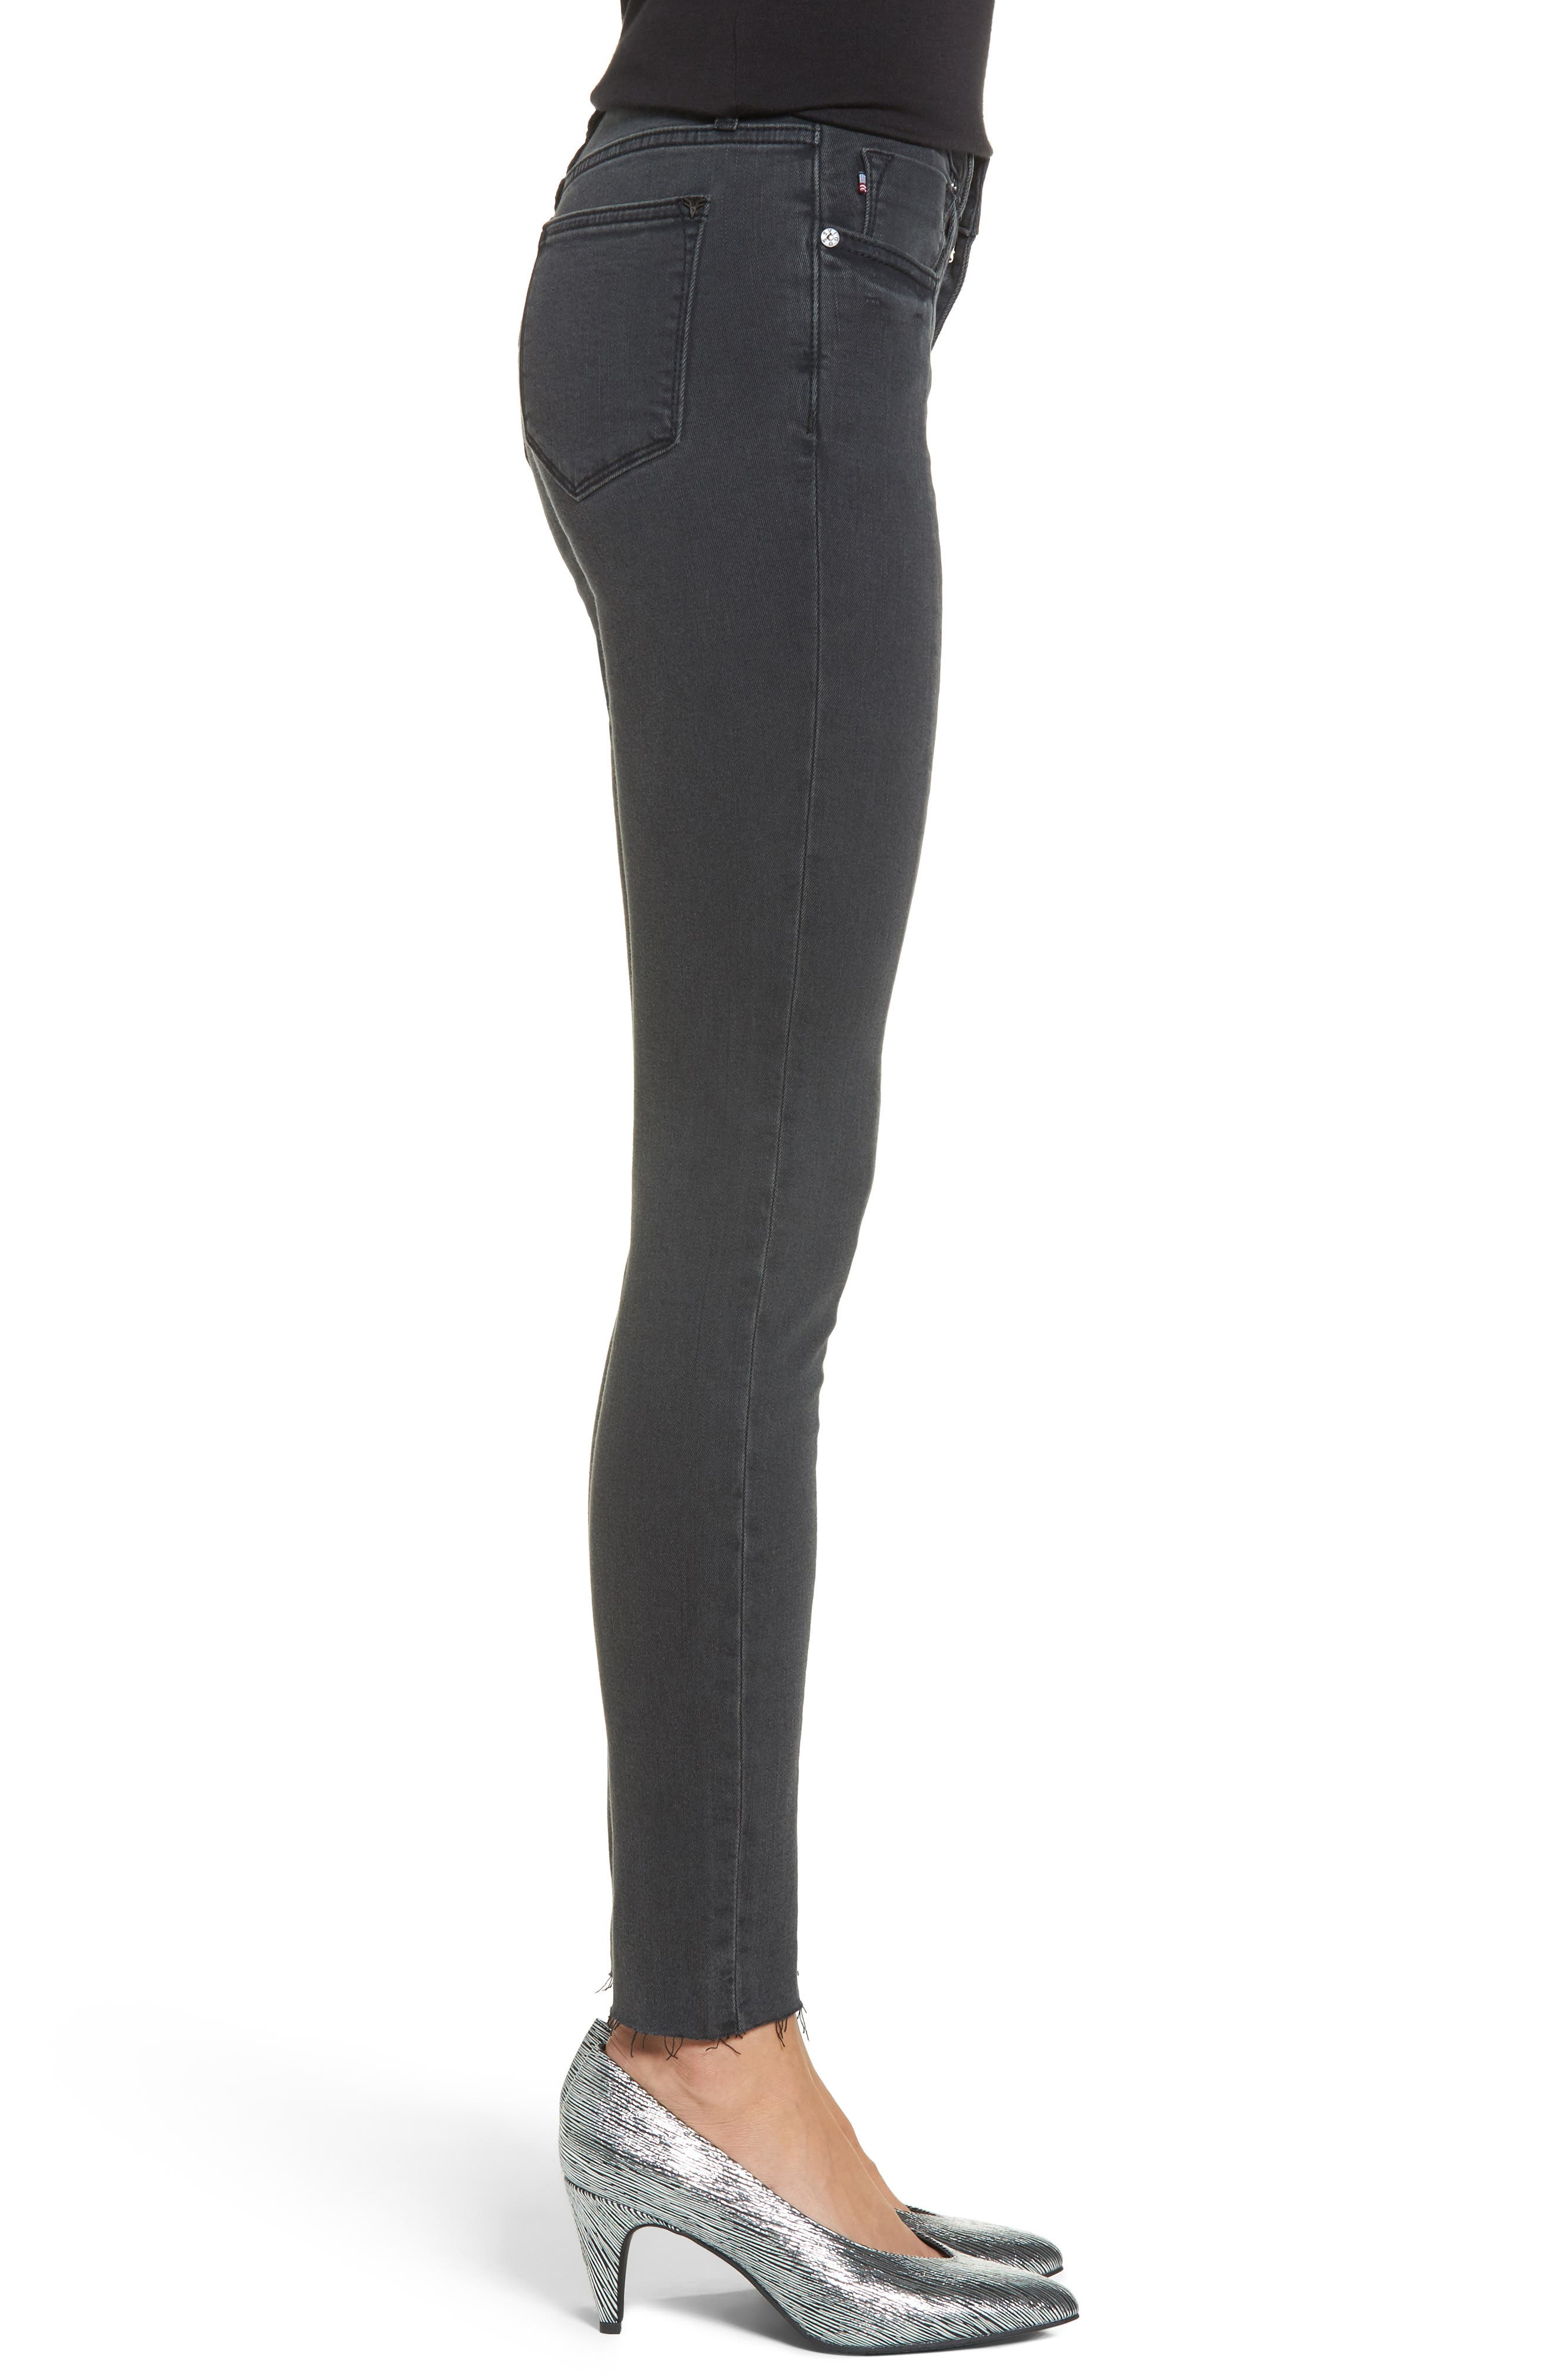 Jagger Front Seam Skinny Jeans,                             Alternate thumbnail 3, color,                             Washed Black